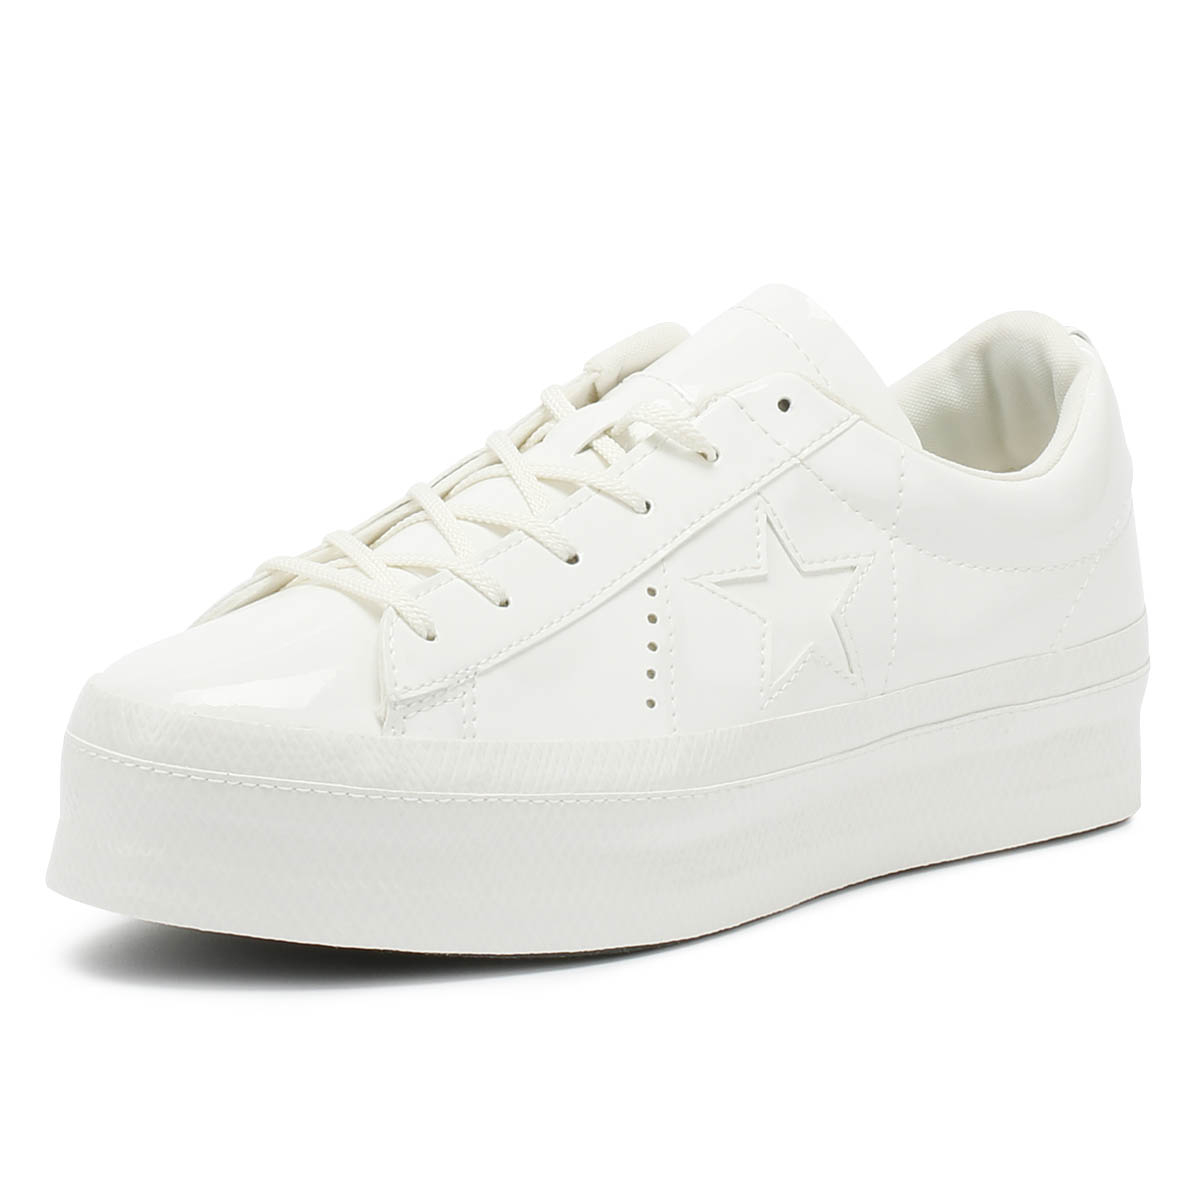 444b619e159 Details about Converse One Star Womens Trainers Vintage White Platform Ox  Lace Up Casual Shoes